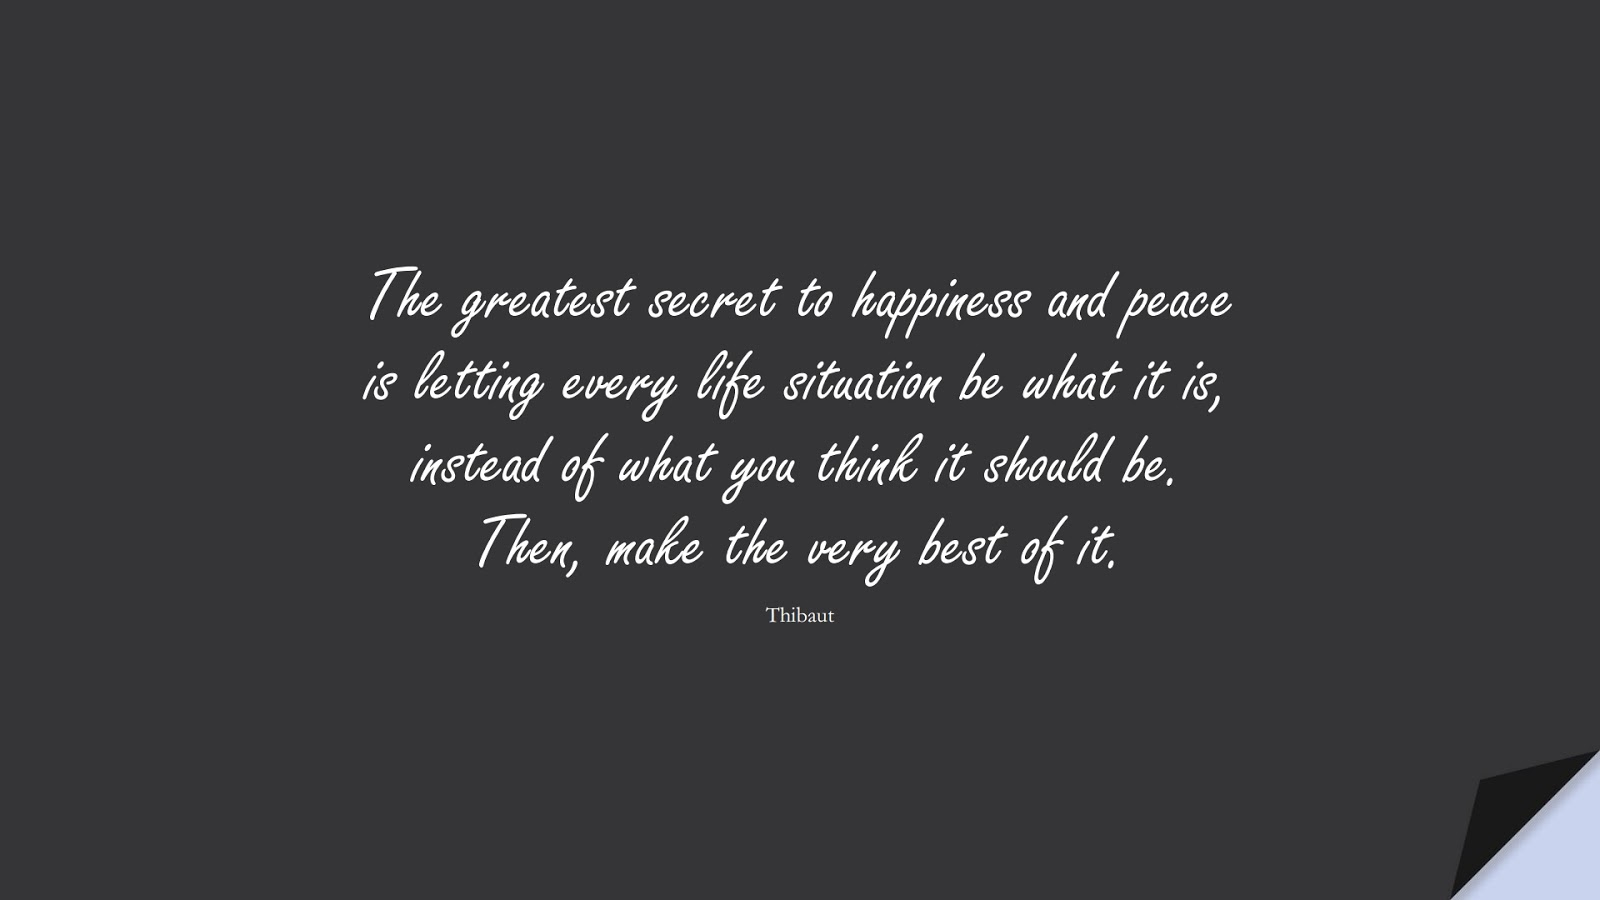 The greatest secret to happiness and peace is letting every life situation be what it is, instead of what you think it should be. Then, make the very best of it. (Thibaut);  #HappinessQuotes